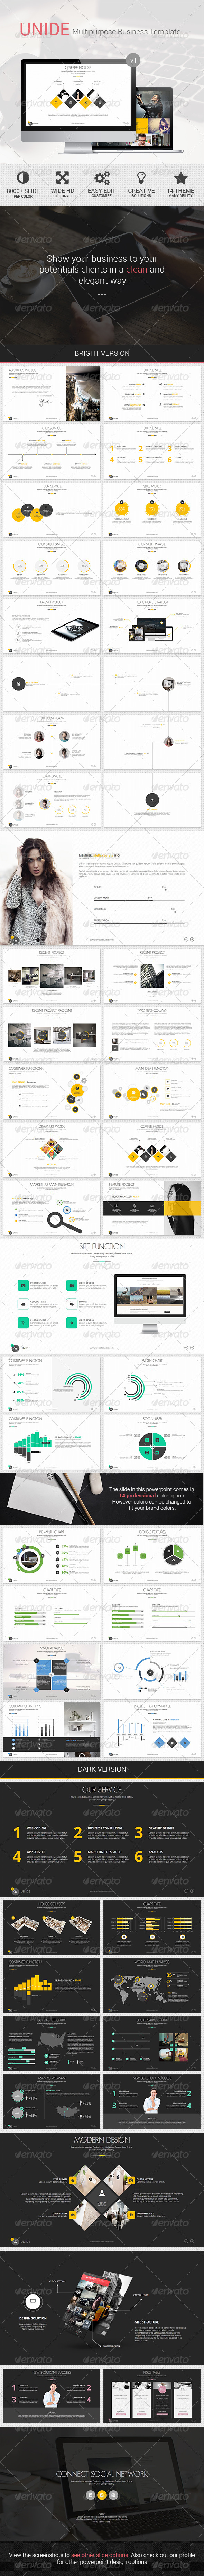 GraphicRiver UNIDE Powerpoint Presentation Template 8586768